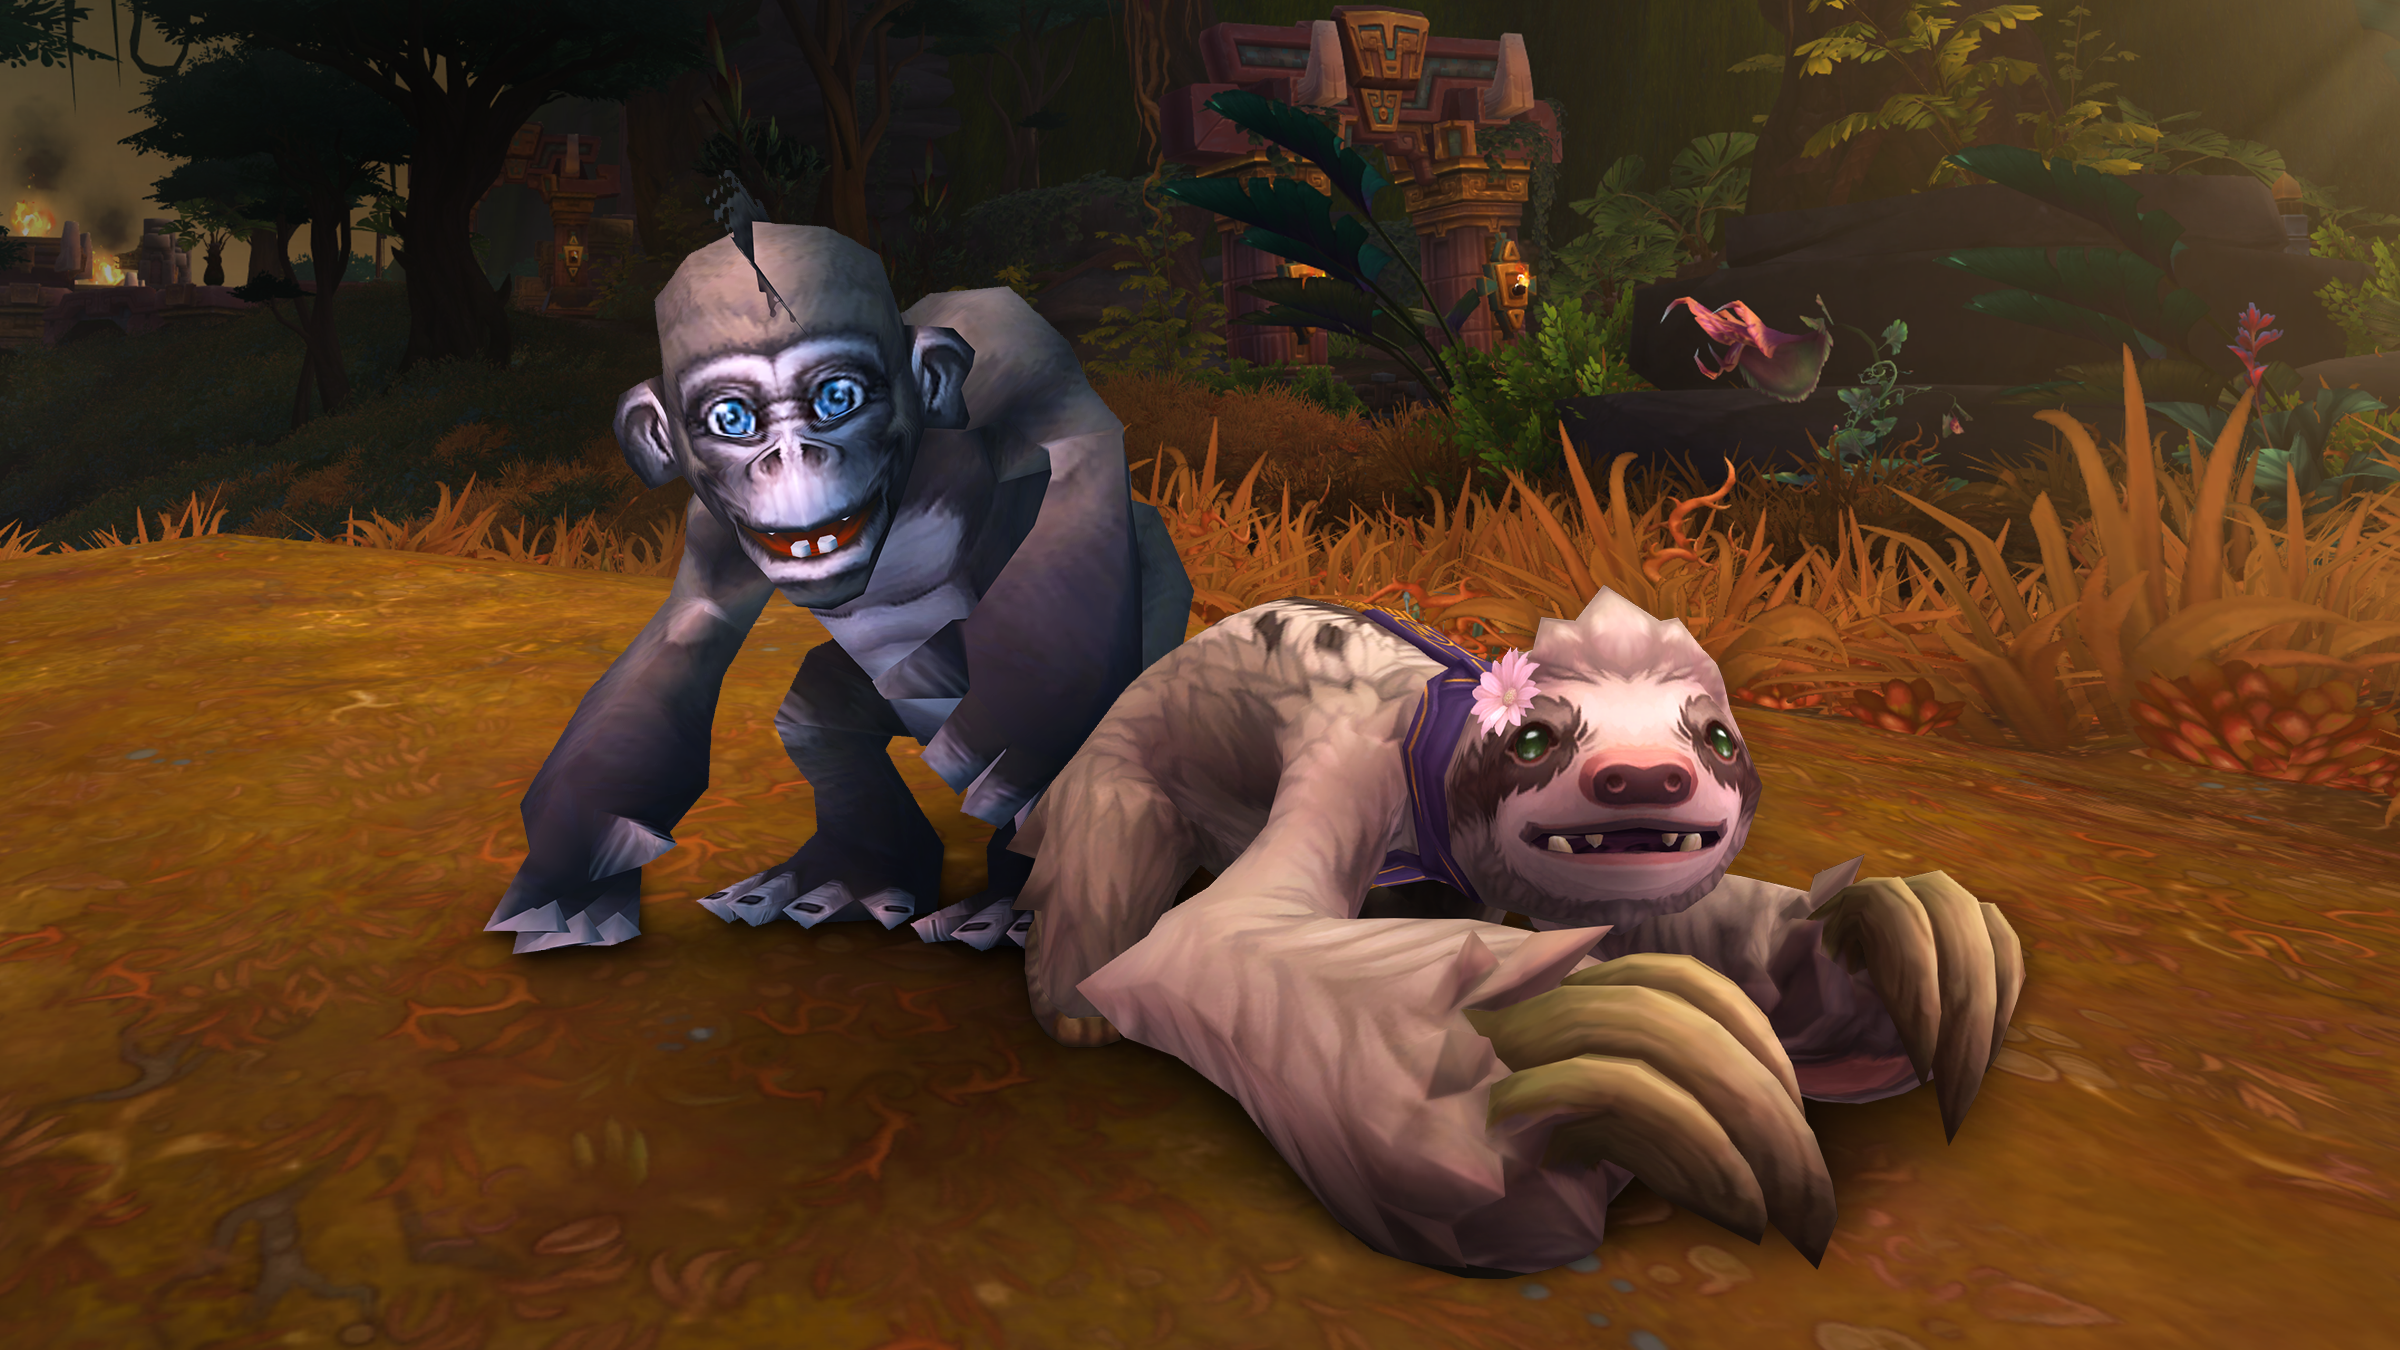 The charity sloth pet for World of Warcraft is adorable